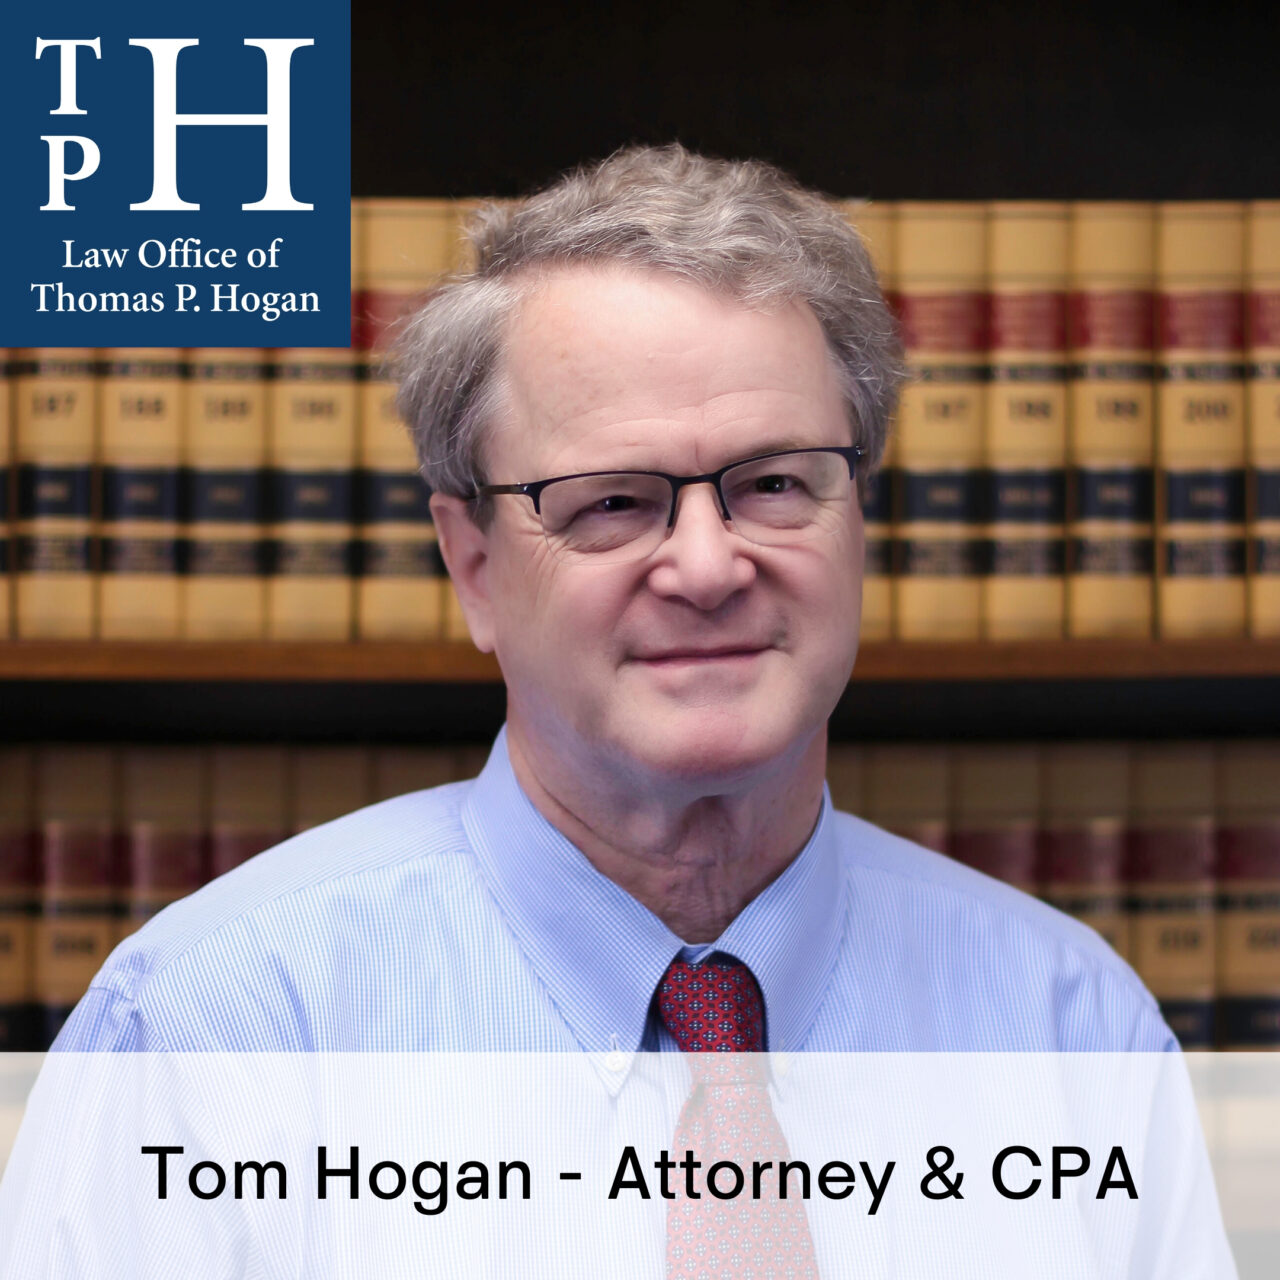 Thomas P. Hogan Law Office of Thomas Hogan